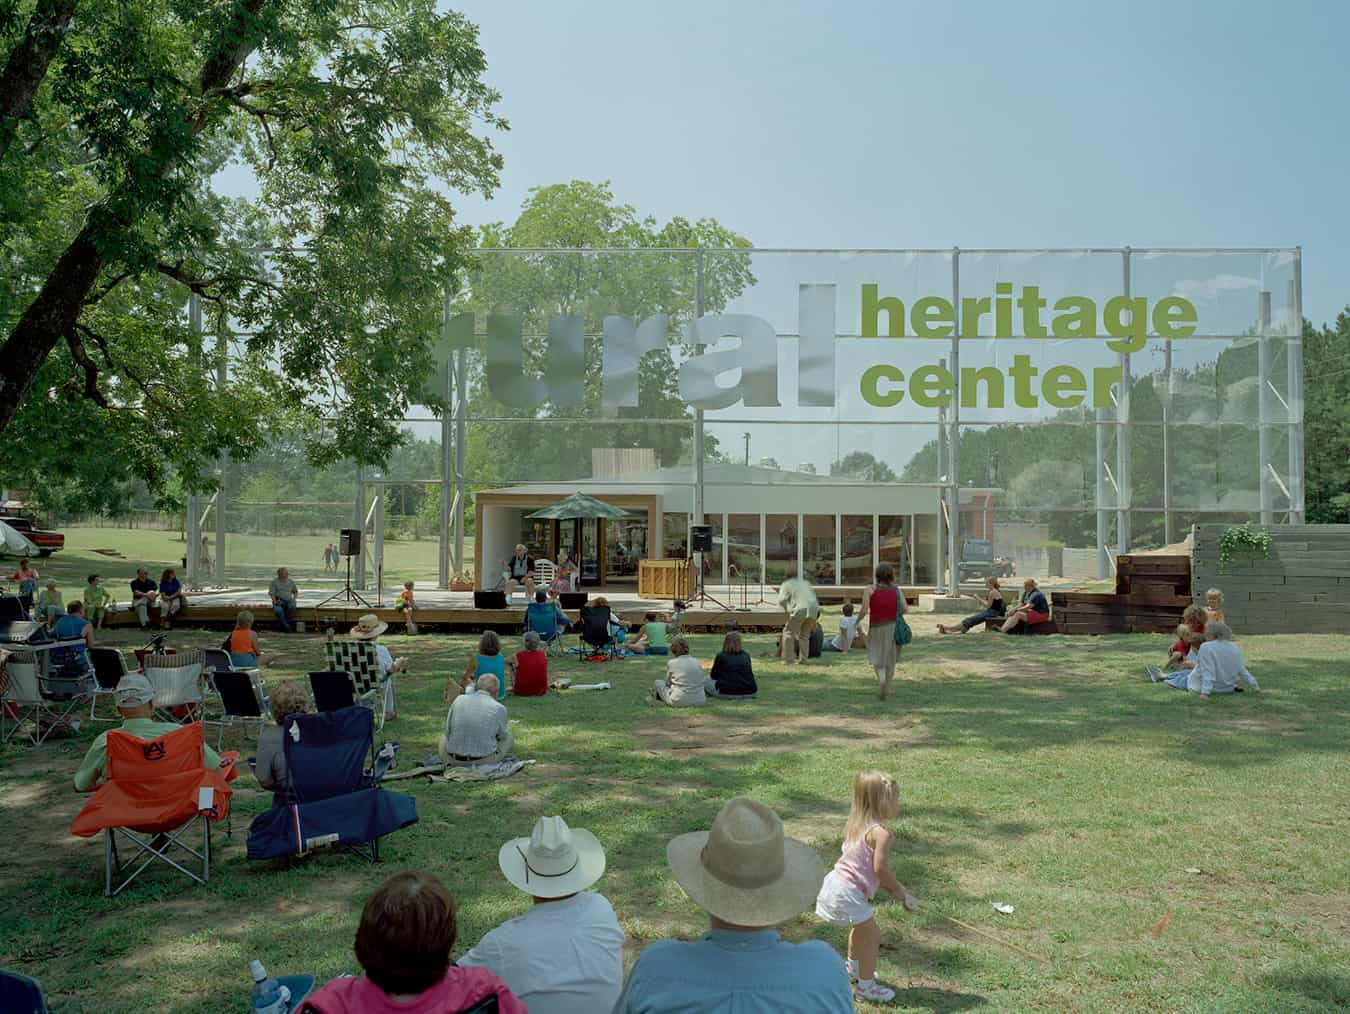 People on the lawn of the Rural Heritage Center, enjoying a show